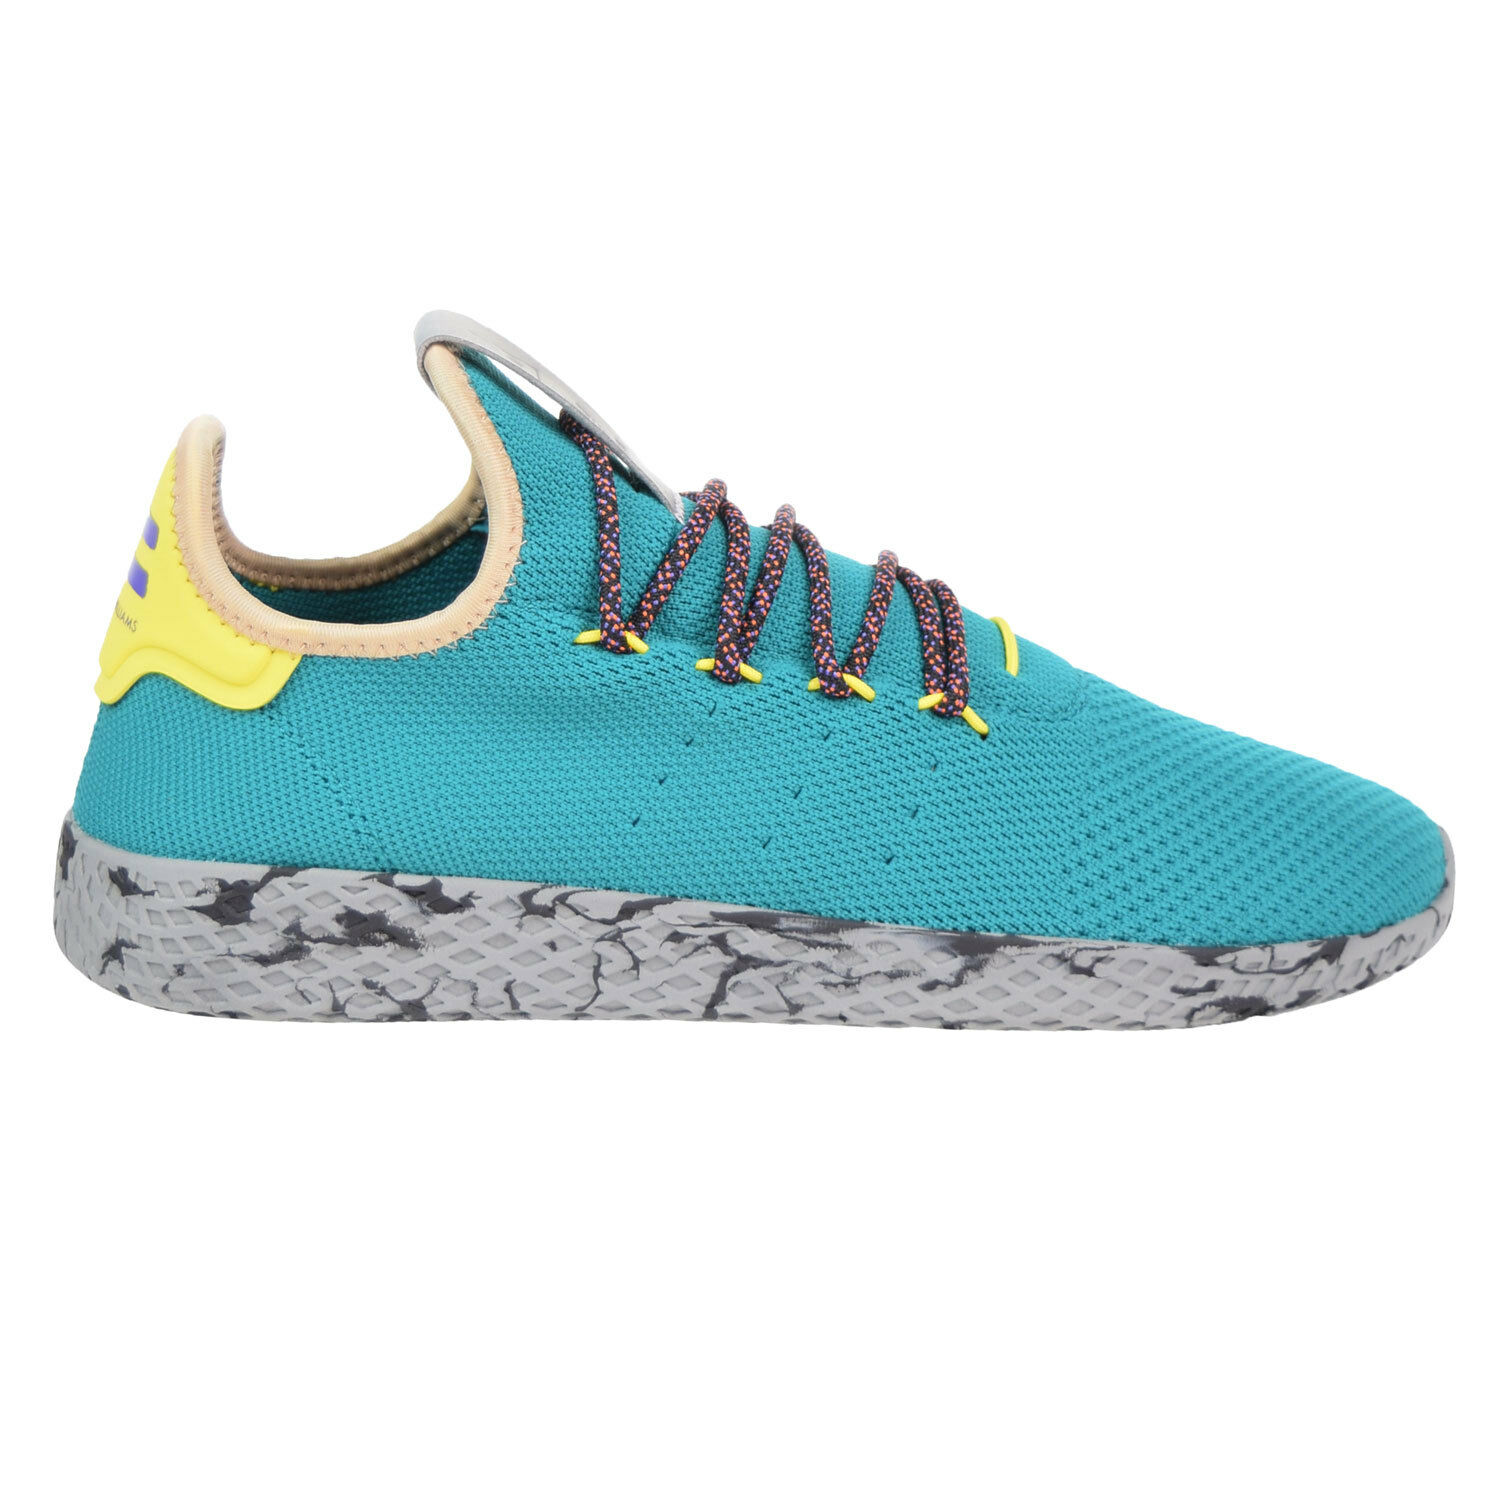 Adidas Pharrell Williams Tennis HU Men's Shoes Teal/Yellow/Grey Marble cq1872